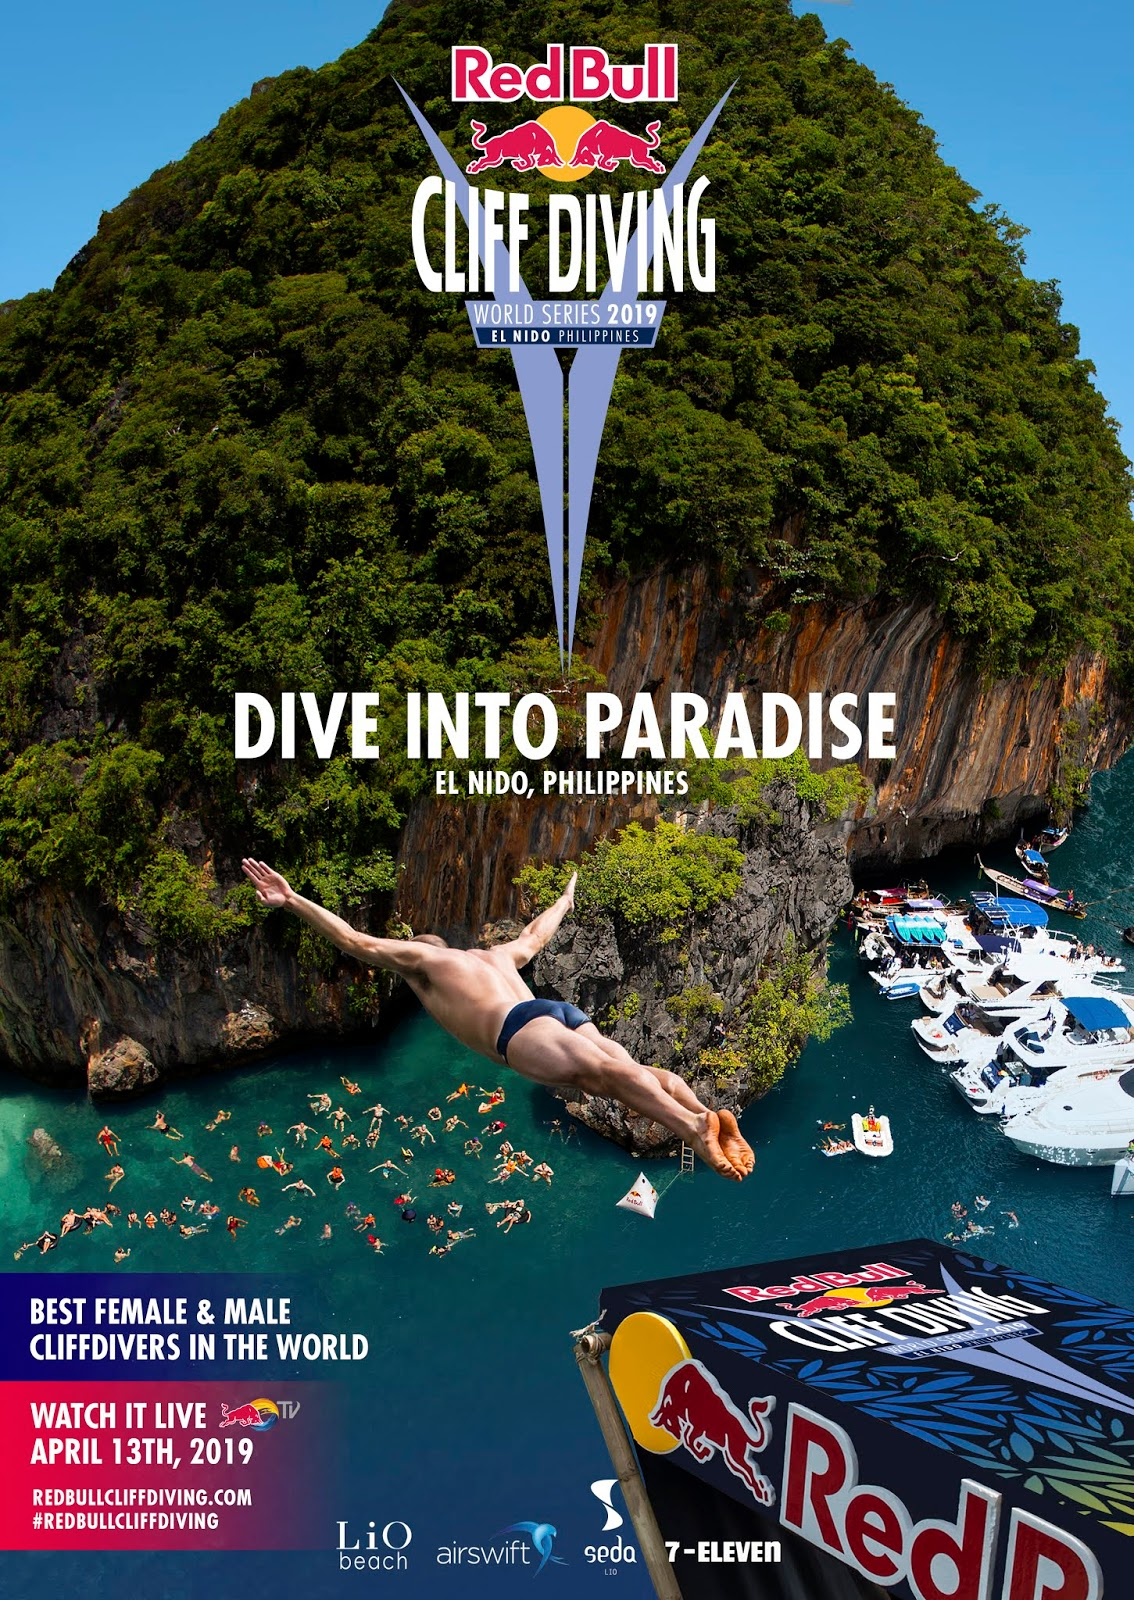 Red Bull Cliff Diving World Series Makes First Ever Philippine Stop to Kick off 11th Season